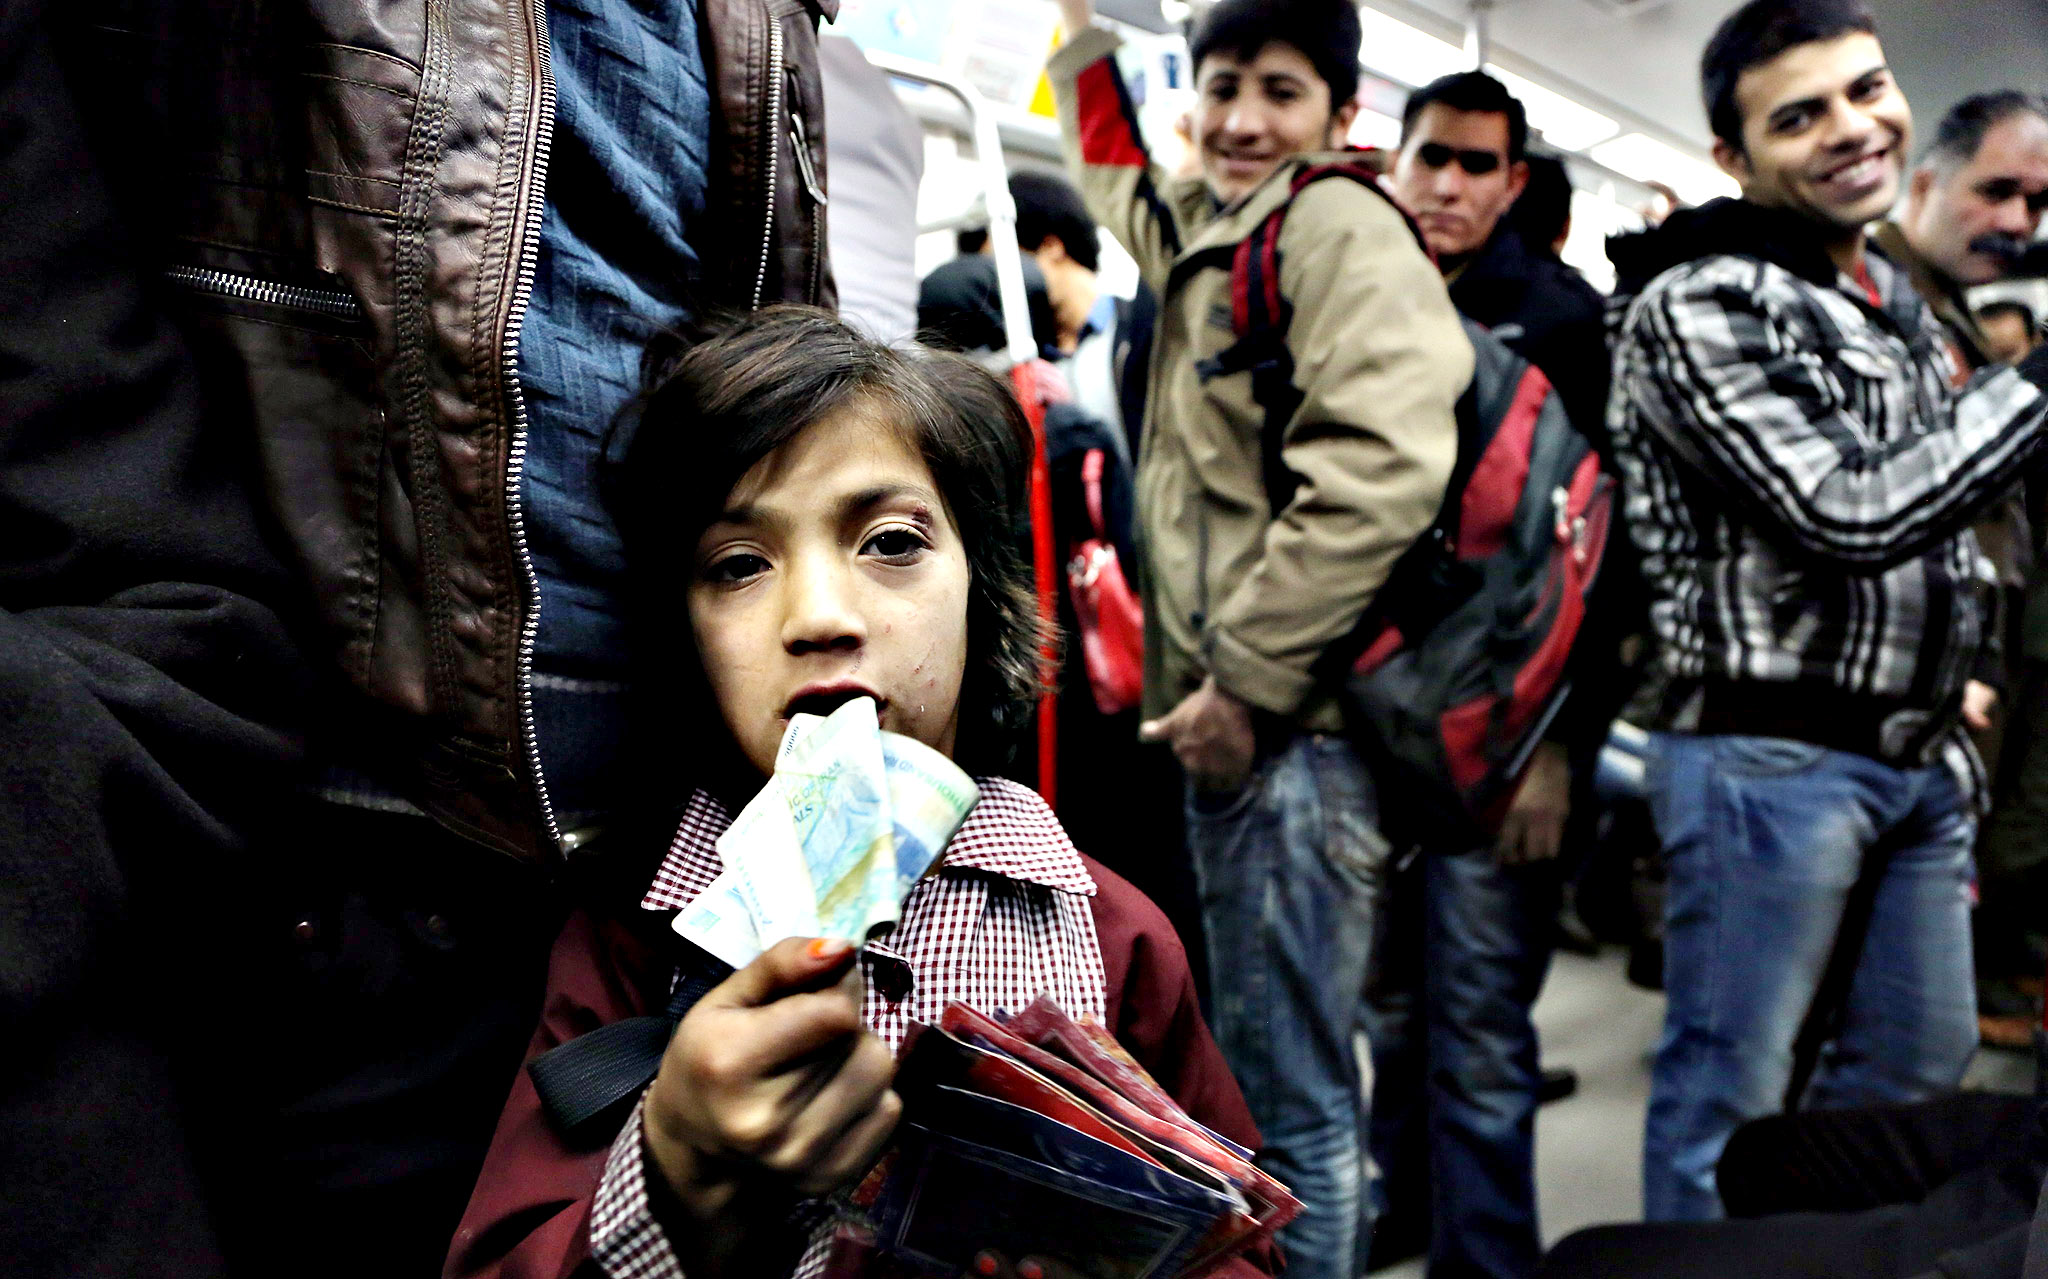 Mona, an Iranian girl, sells fortune papers in a subway in Tehran, Iran, 07 January 2014. International sanctions against Iran in connection with the country's controversial nuclear programmes have led the country into an economic crisis, forcing even children helping out their families as street vendors.